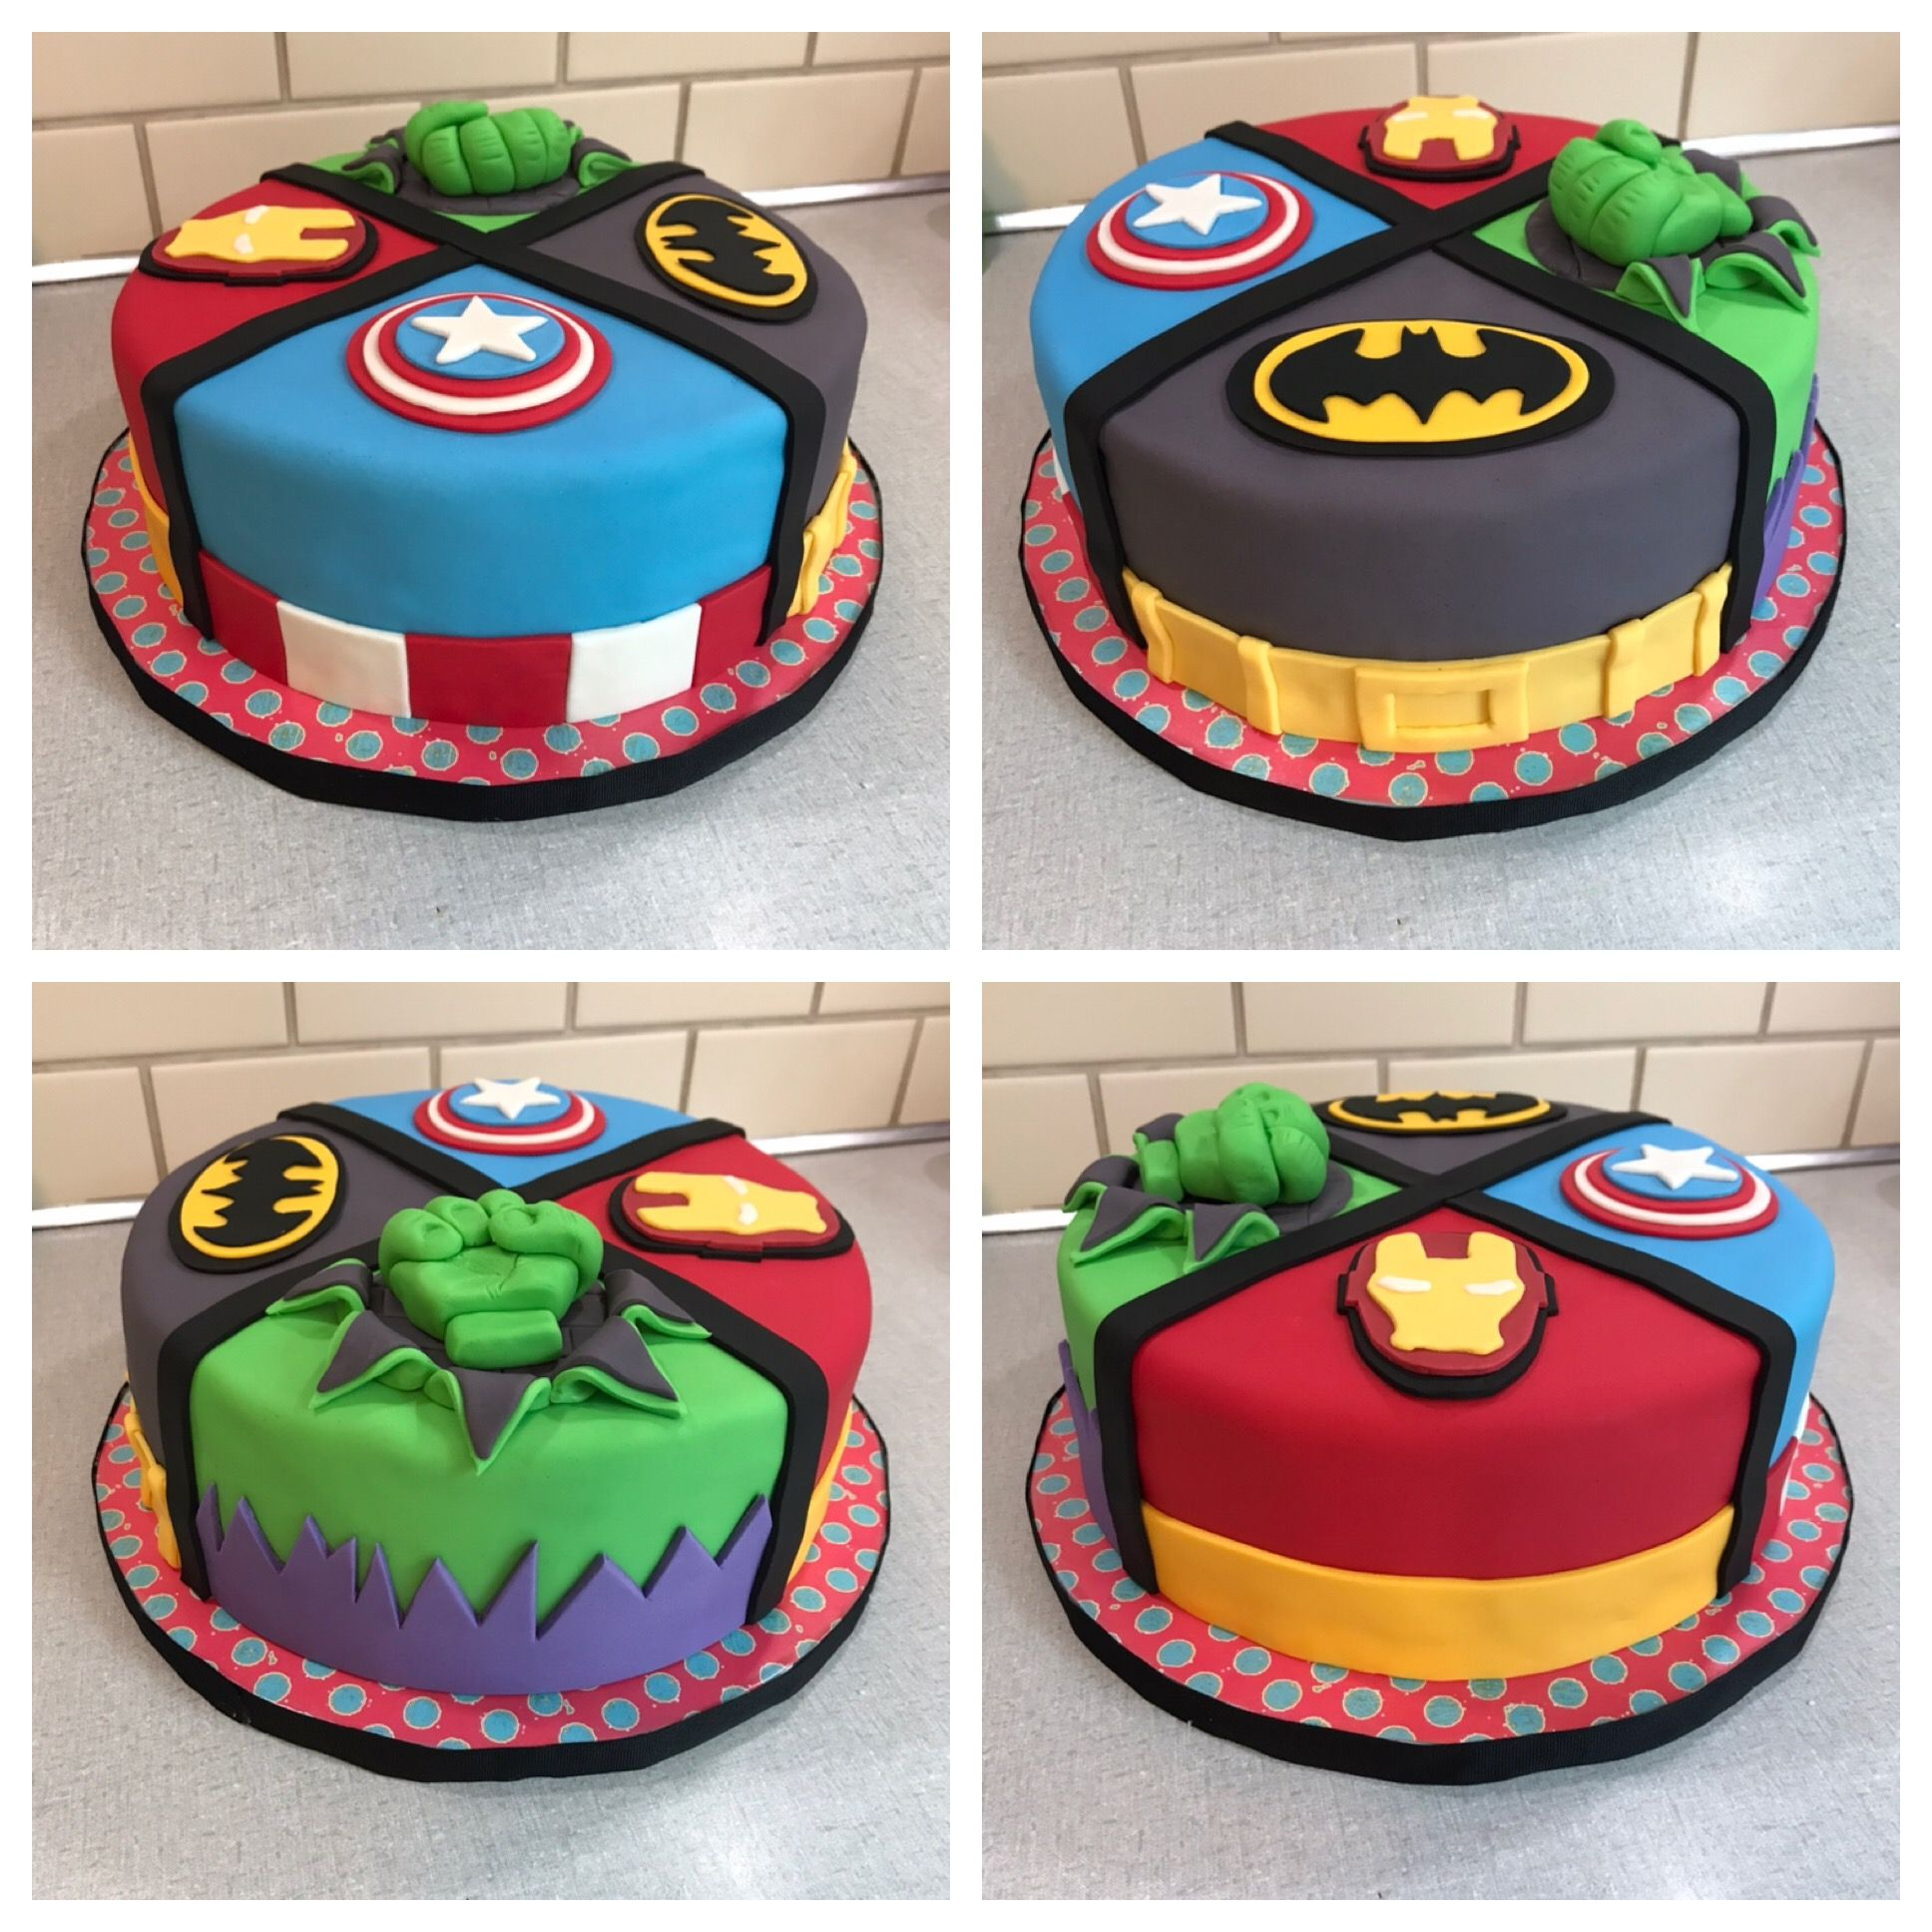 Superhero Cake Batman Cake Hulk Cake Captain America Cake Iron Man Cake Superhero Birthday Cake Superhero Cake Marvel Birthday Cake